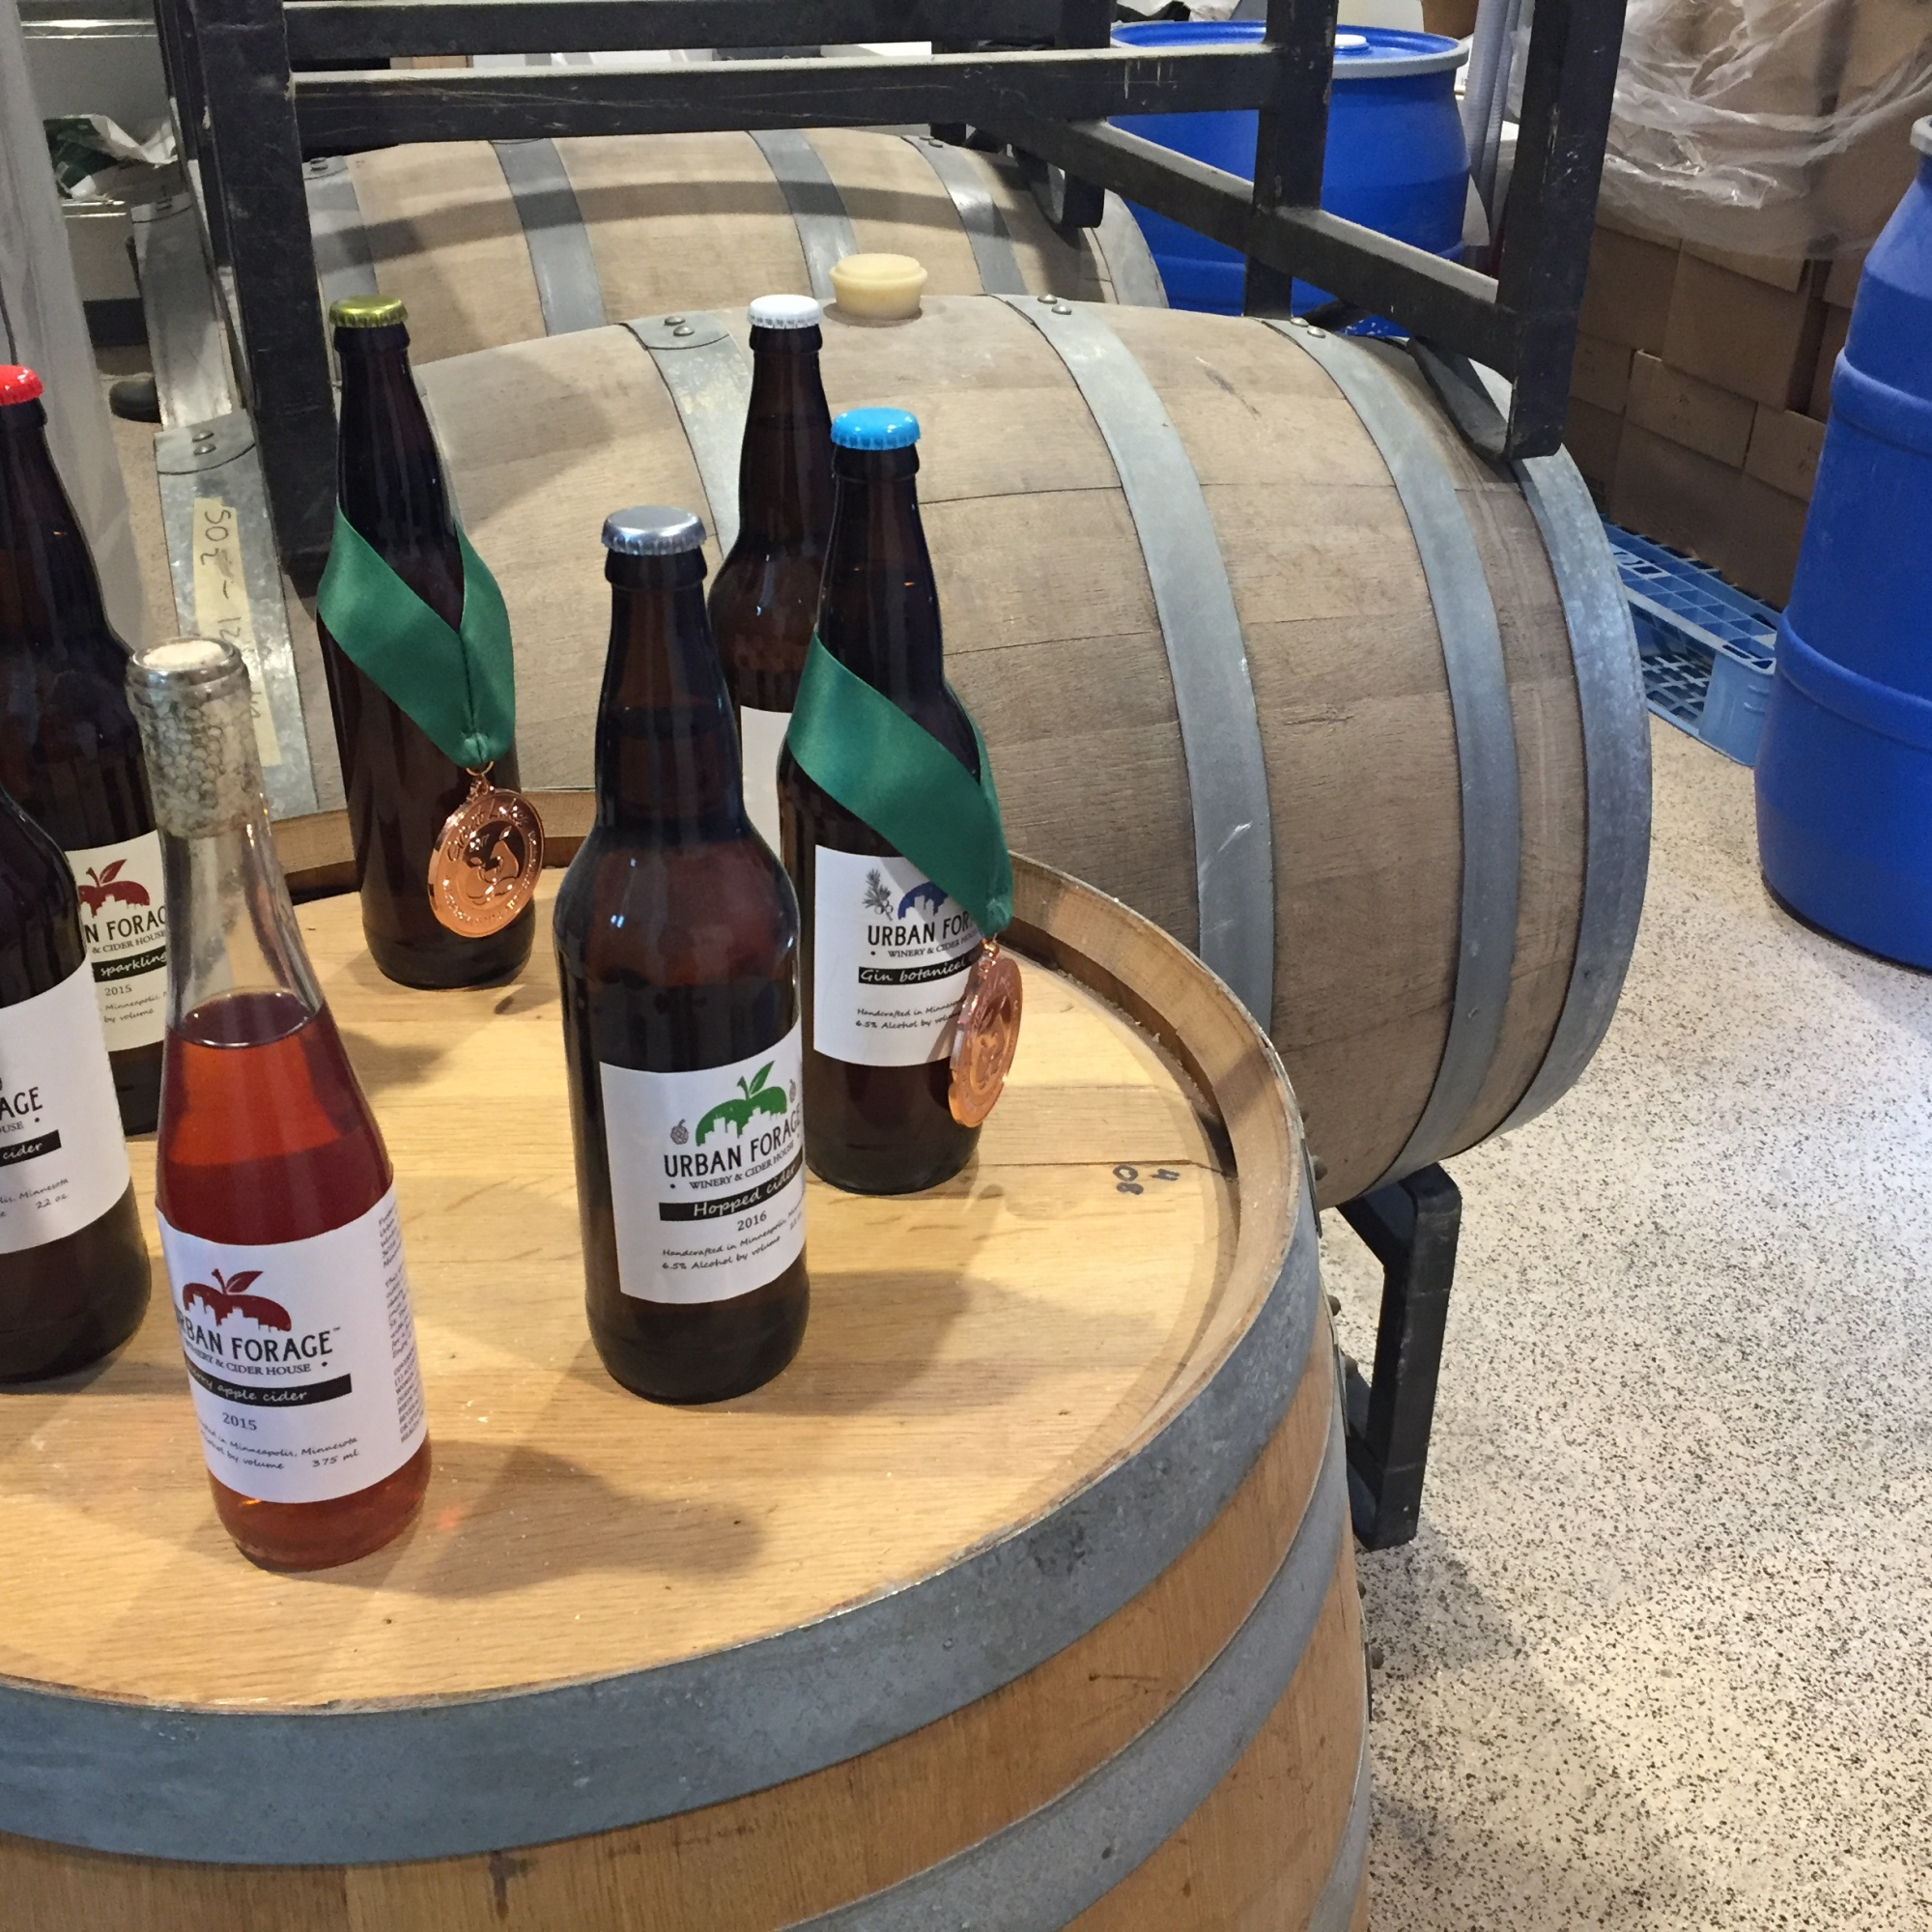 Urban Forage in Minneapolis makes ciders from foraged apples. (I took this photo.)